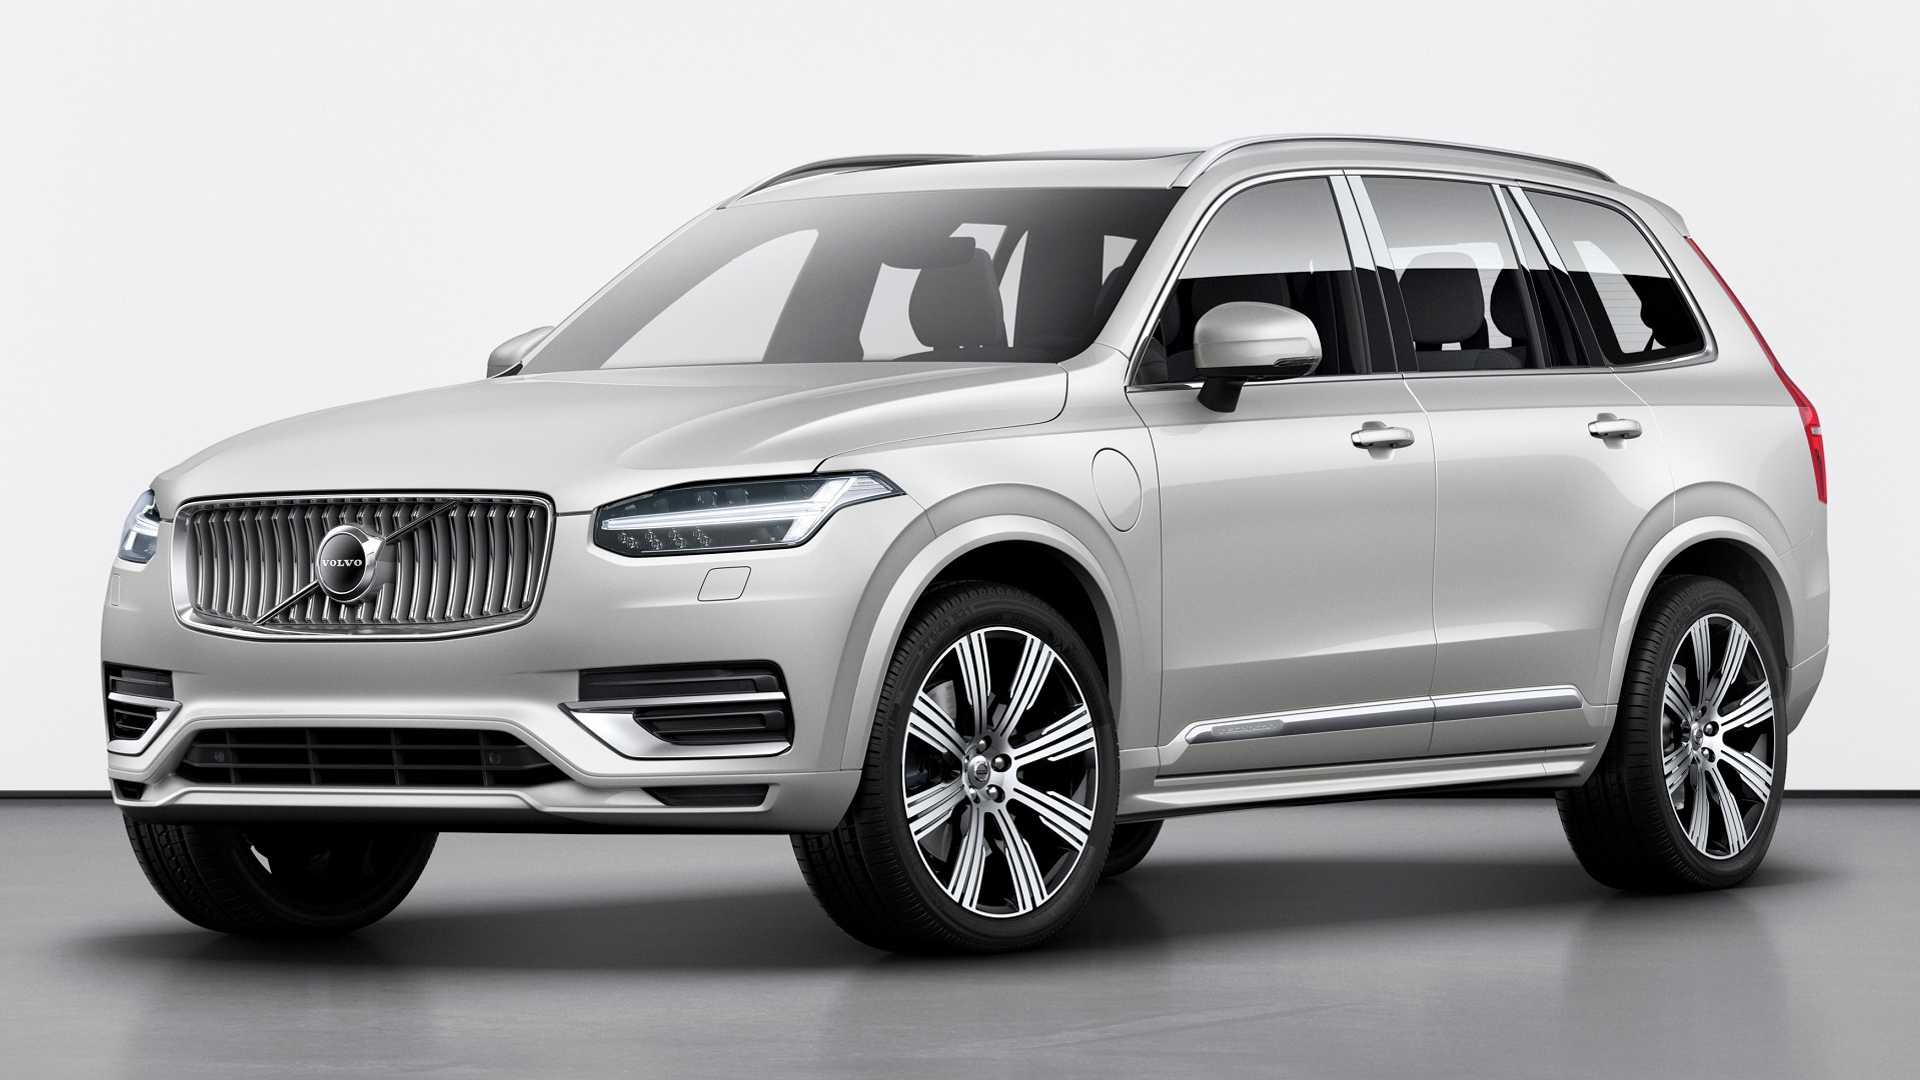 56 All New Volvo By 2020 Exterior with Volvo By 2020